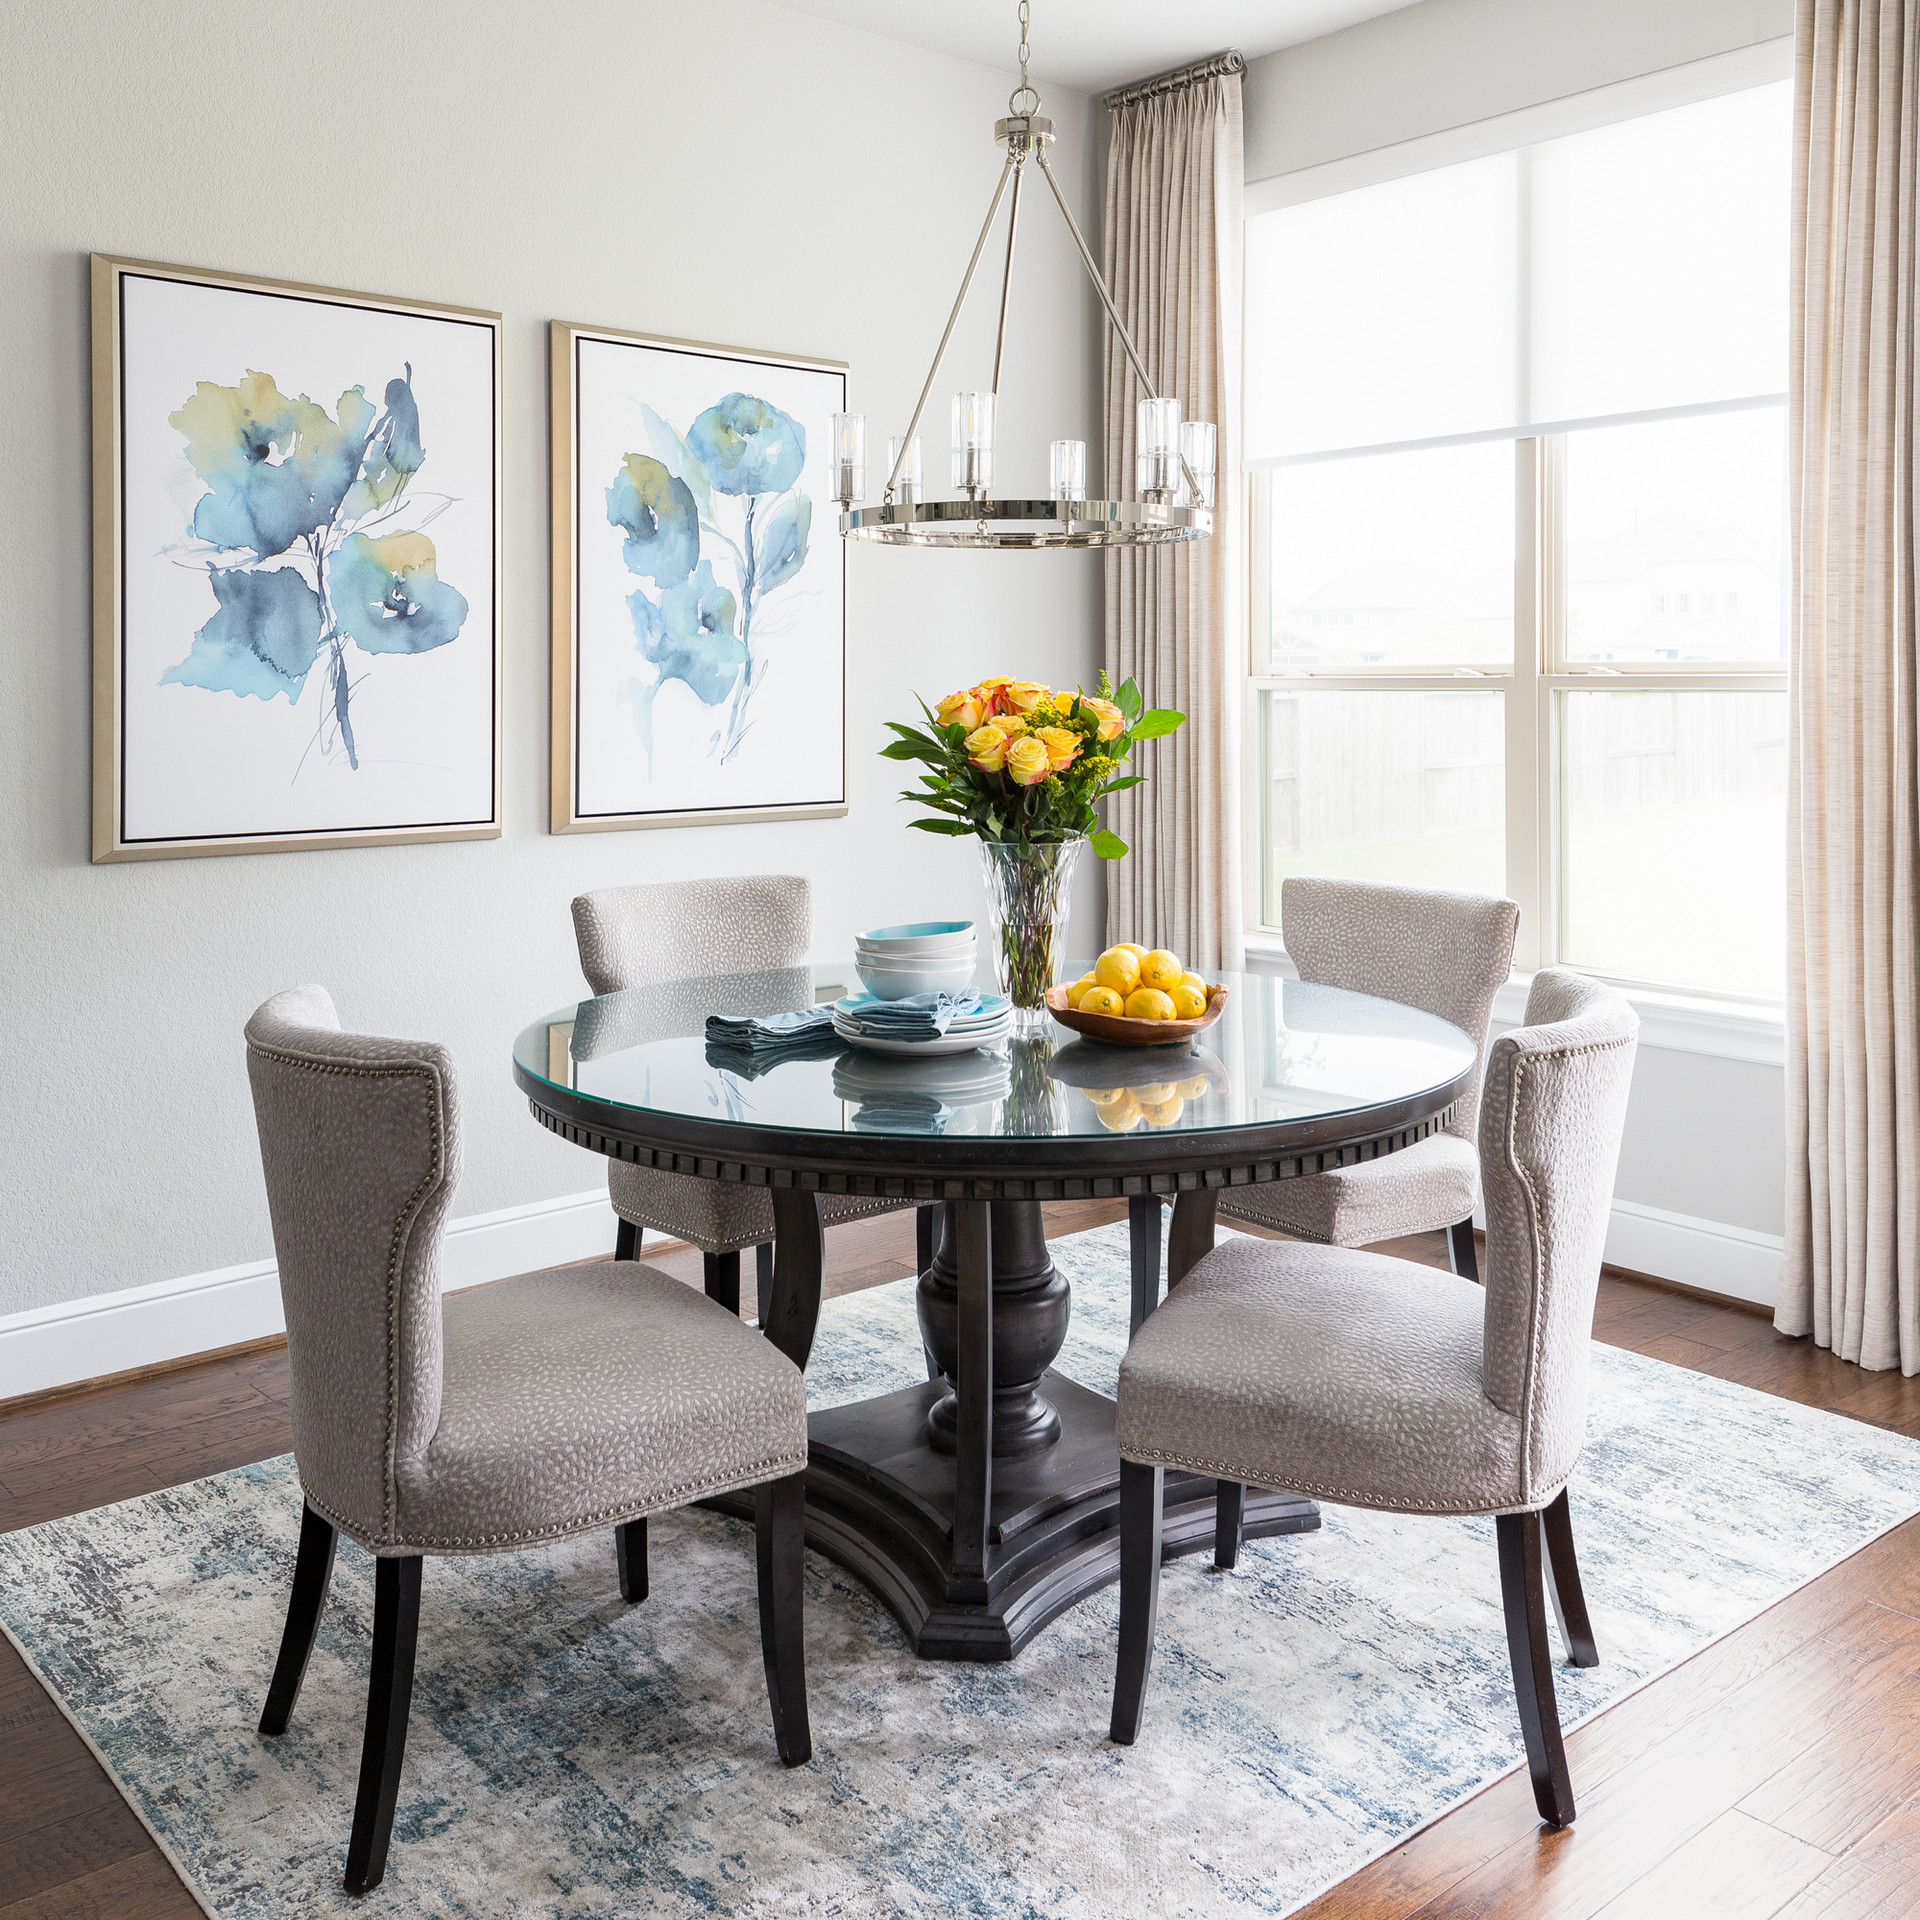 Bright Breakfast Room.jpg